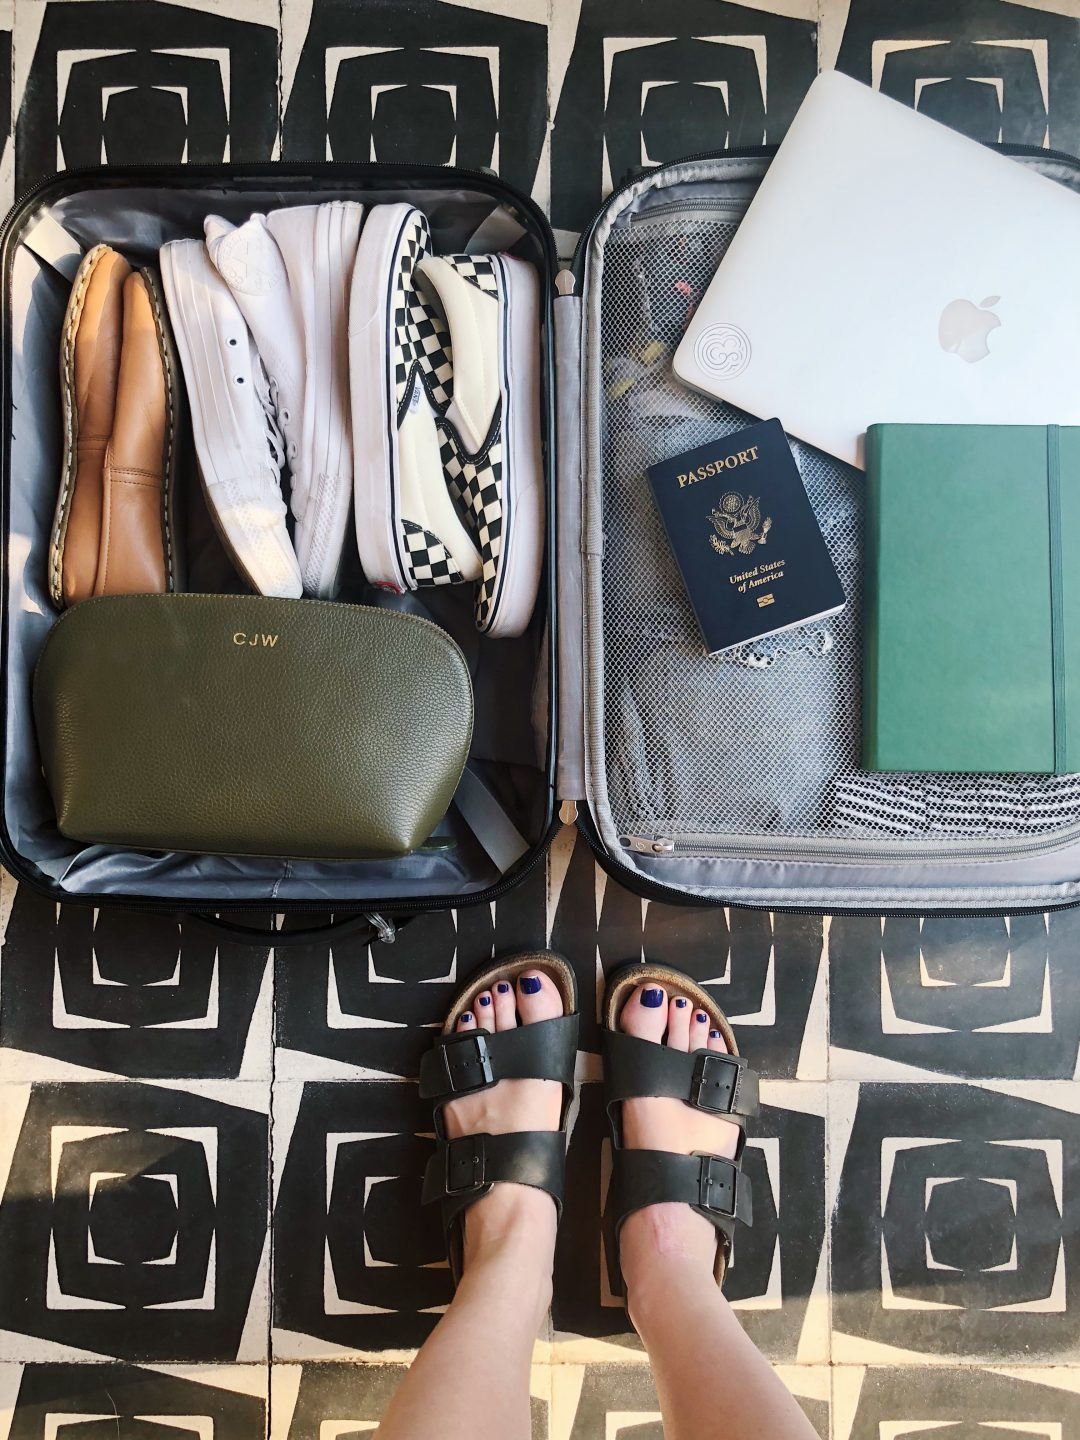 Tips for Solo Travel   Advice for the Female Solo Traveler on Safety, Affordability and Having Fun.